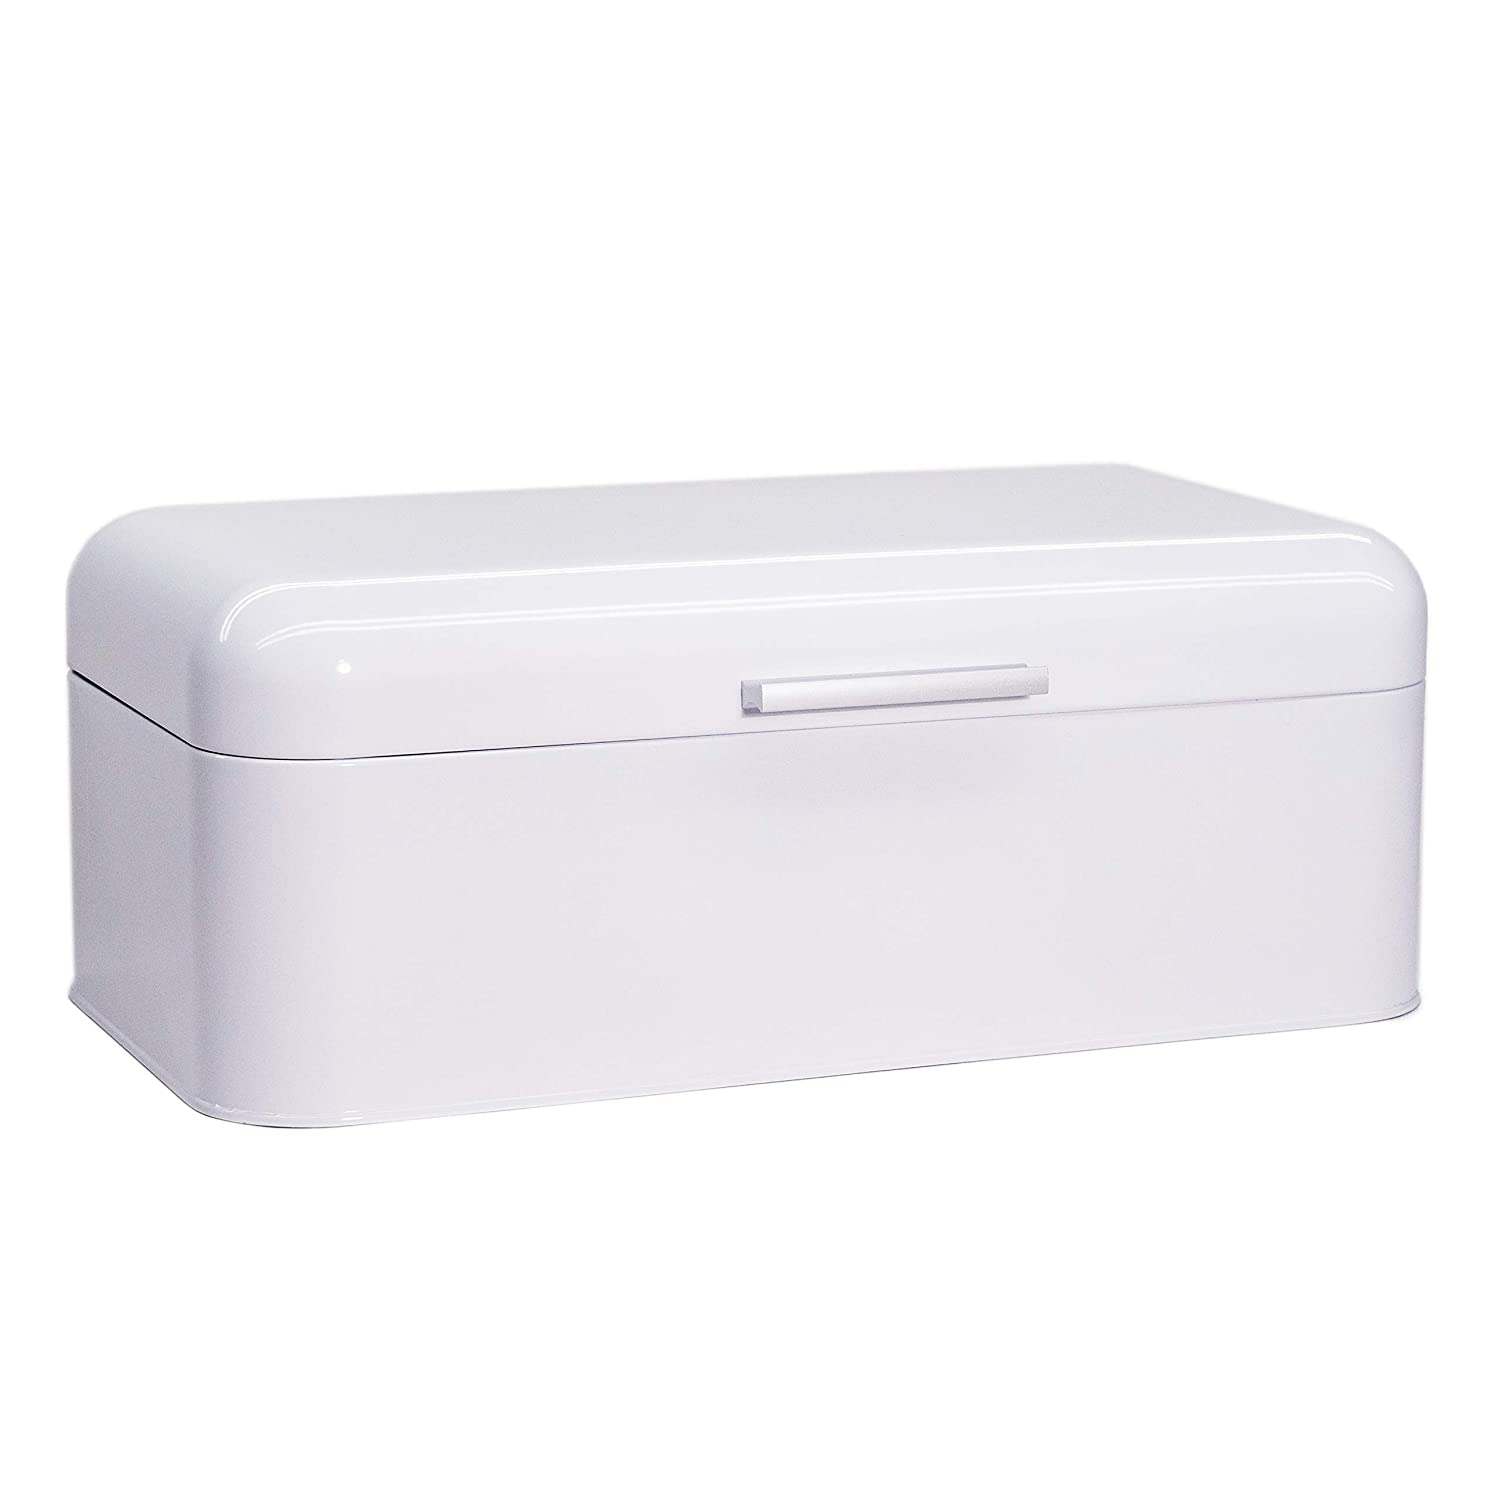 "Large Glossy White Bread Box - Extra Large Storage Container for Loaves, Bagels, Chips & More: 16.5"" x 8.9"" x 6.5"" 